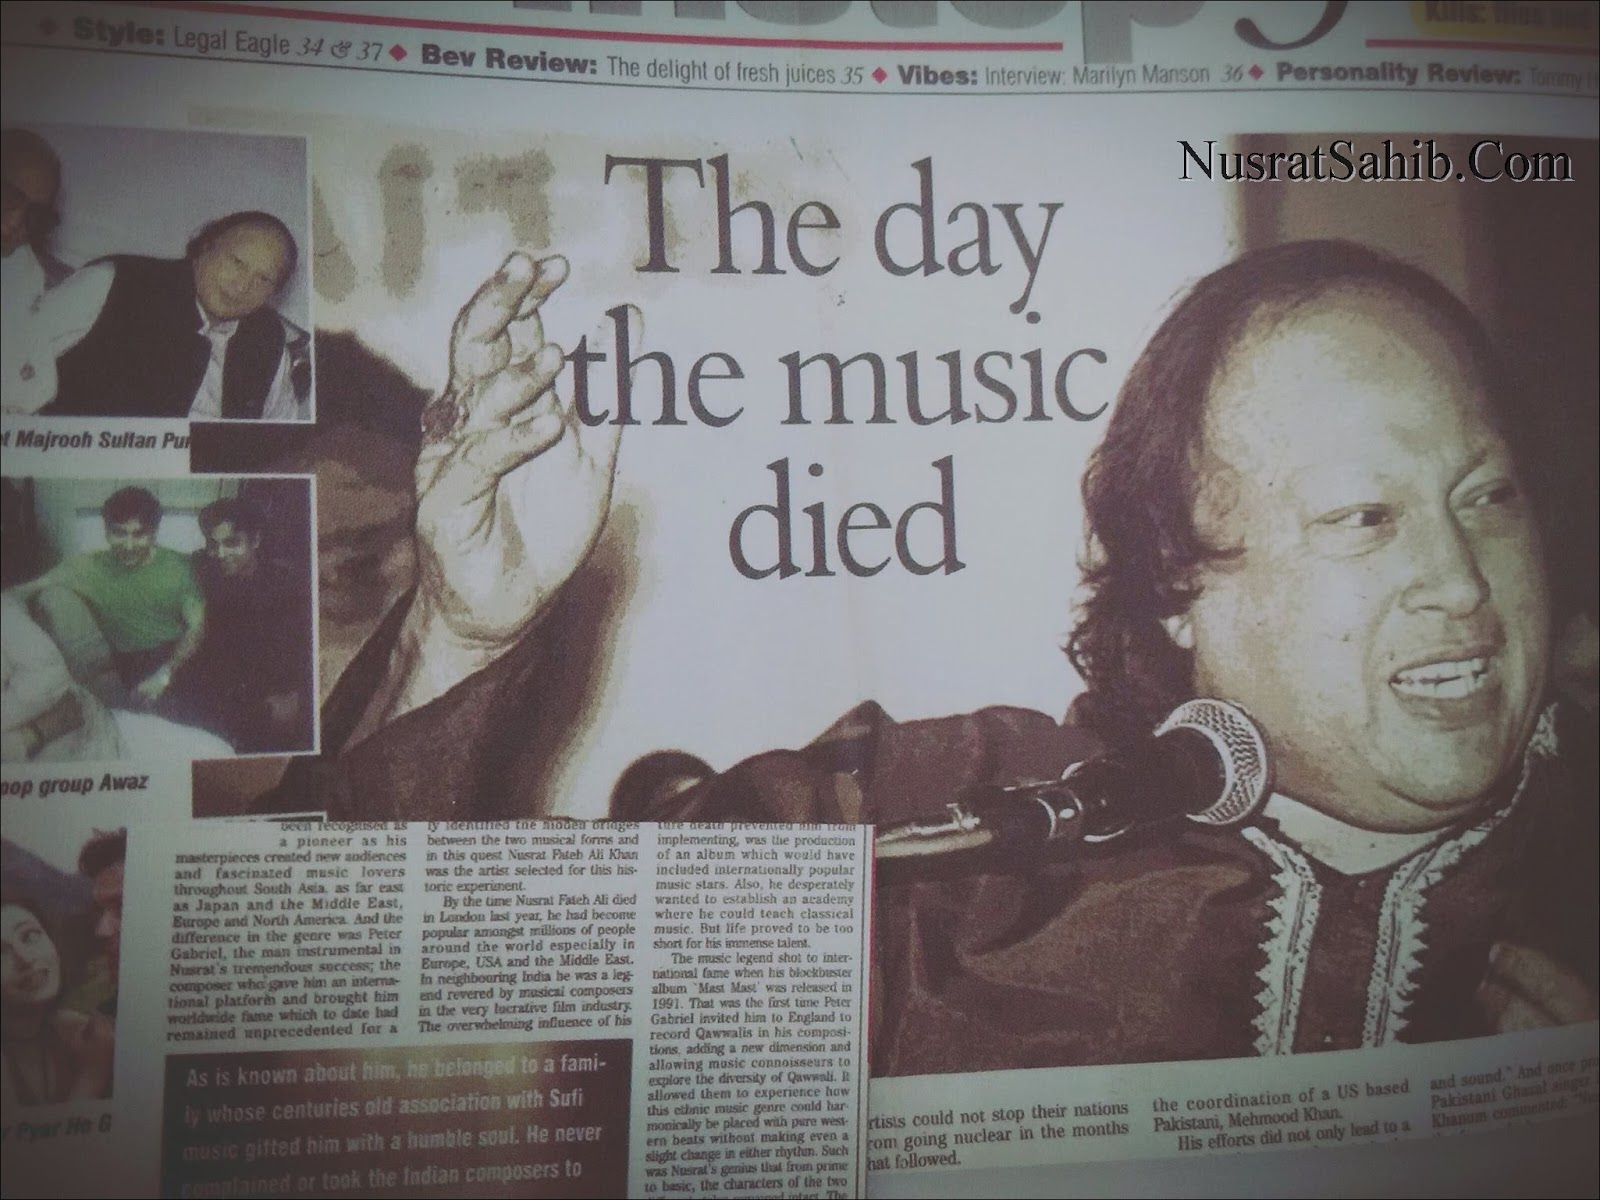 The Day the Music died | Nusrat Fateh Ali Khan | NusratSahib.Com